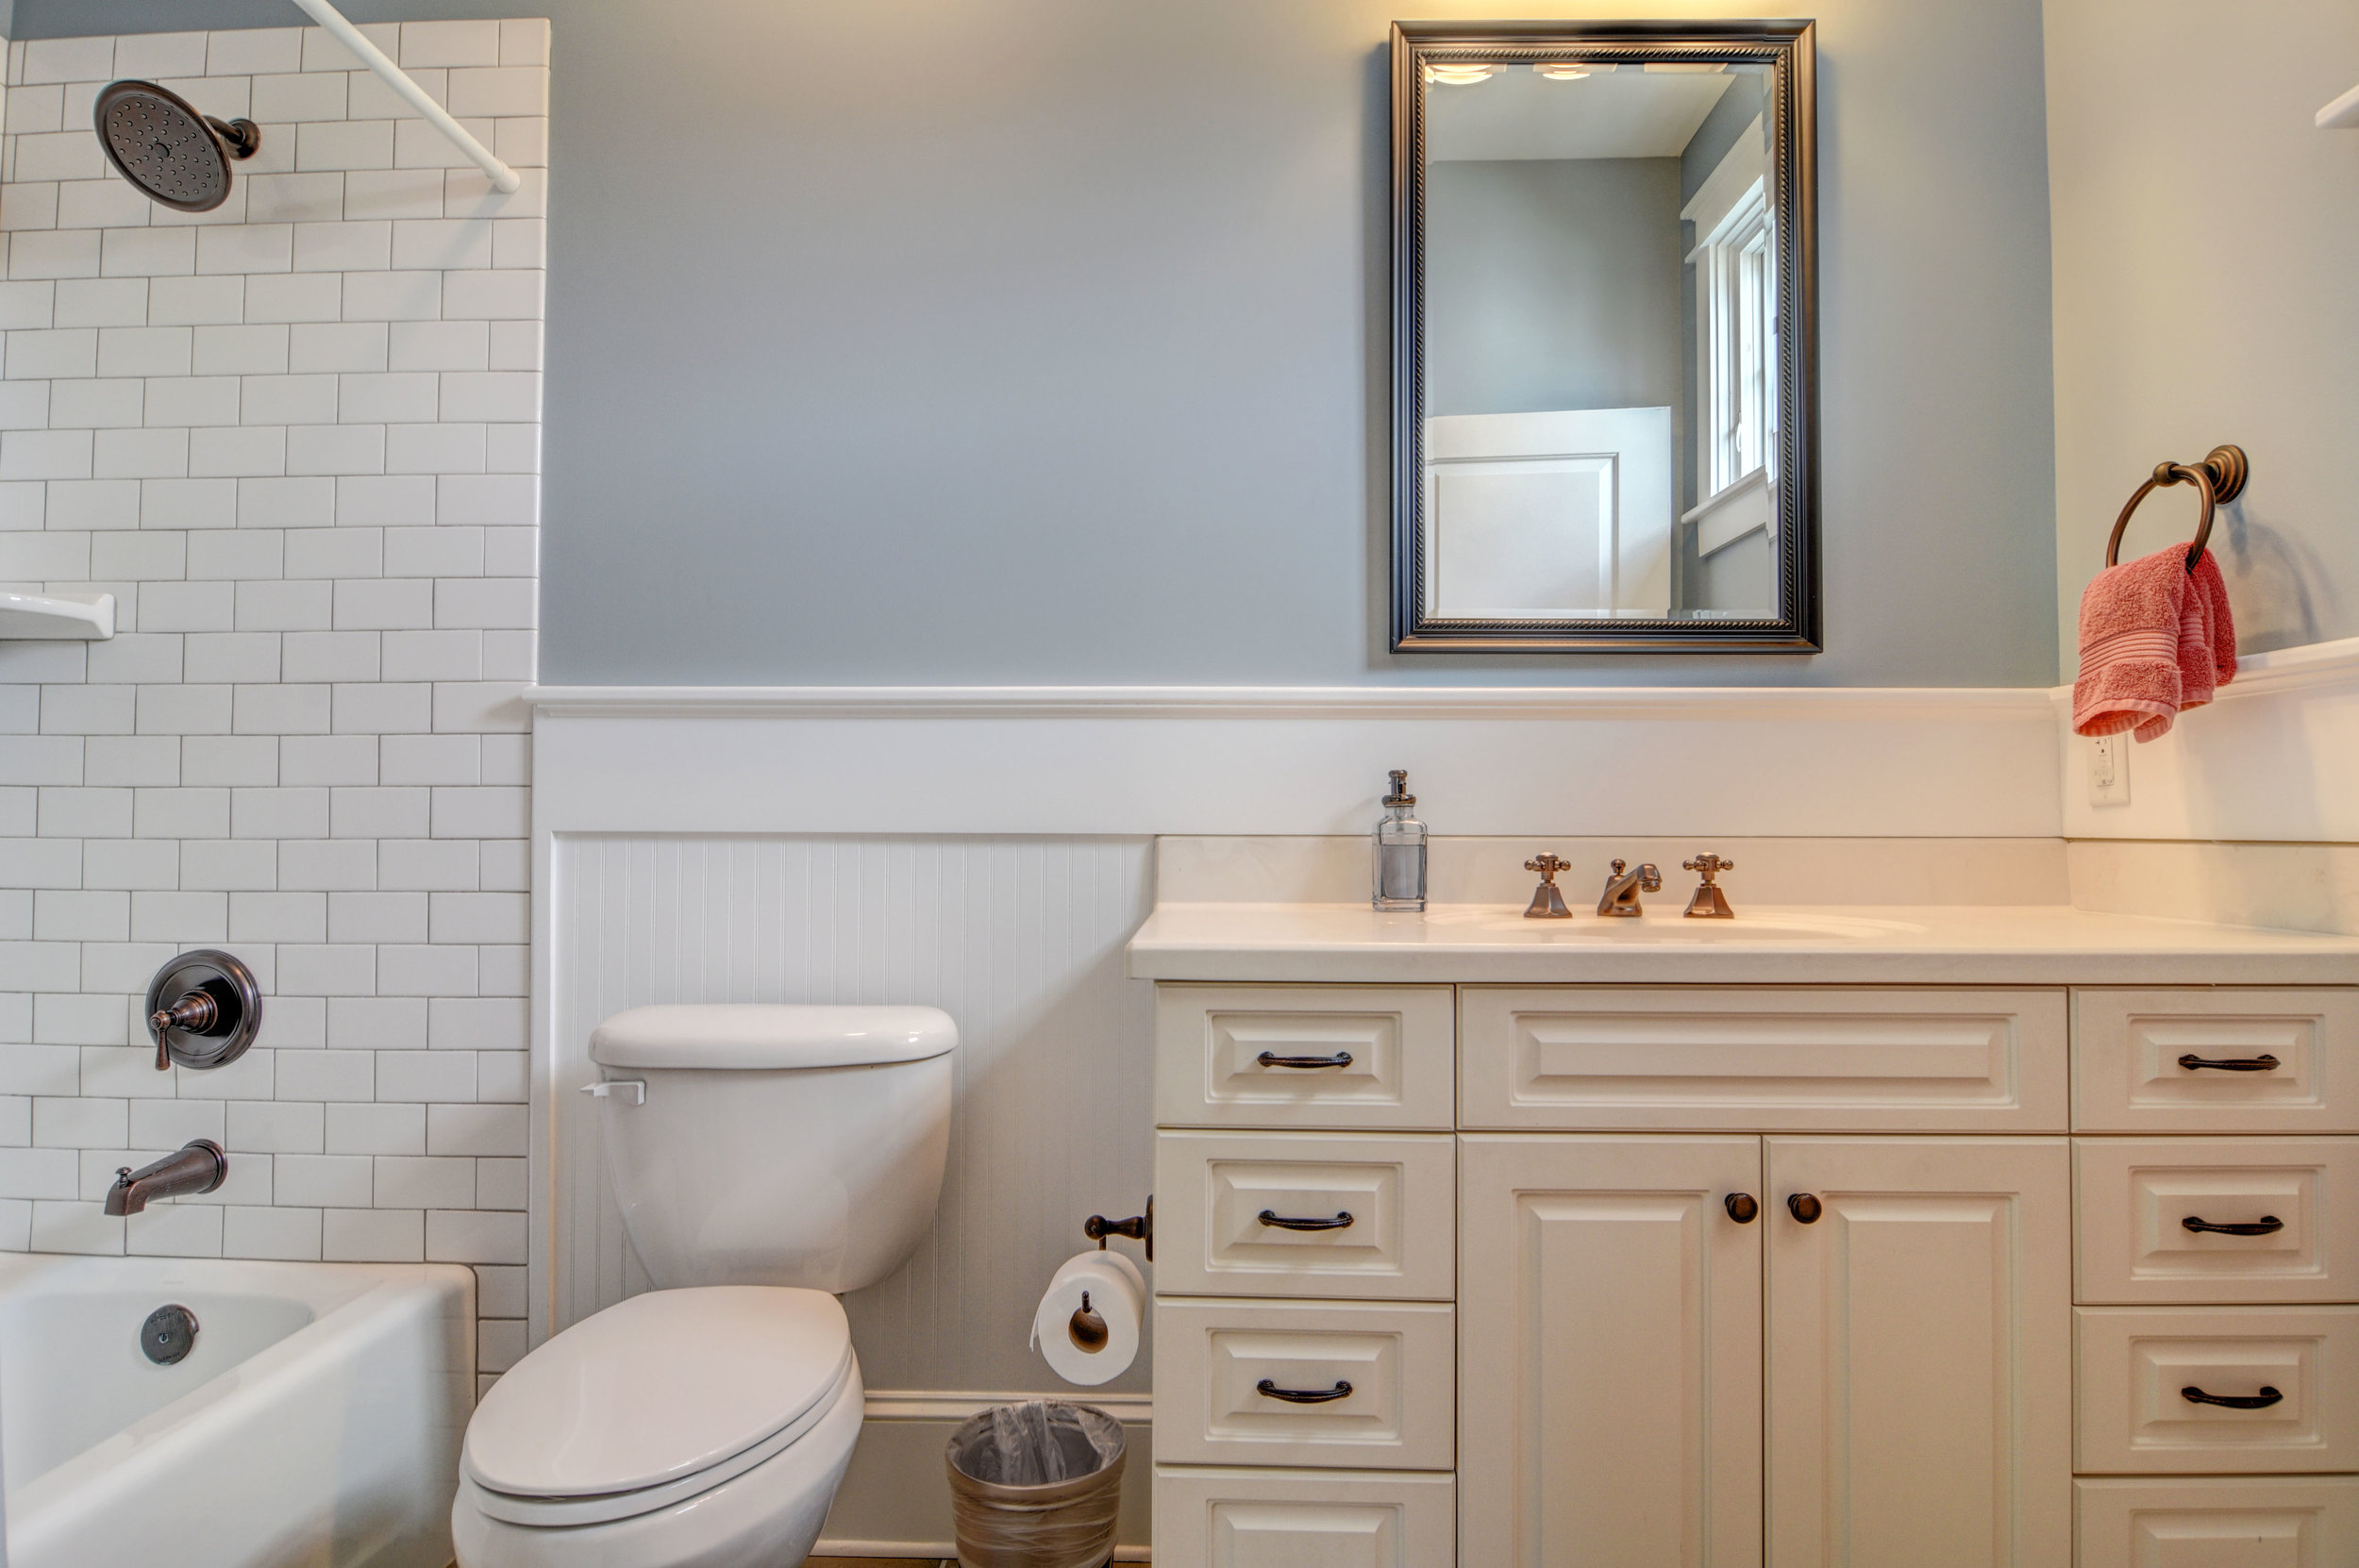 1037 Anchors Bend Way-print-026-43-Second Full Bath-4200x2793-300dpi.jpg